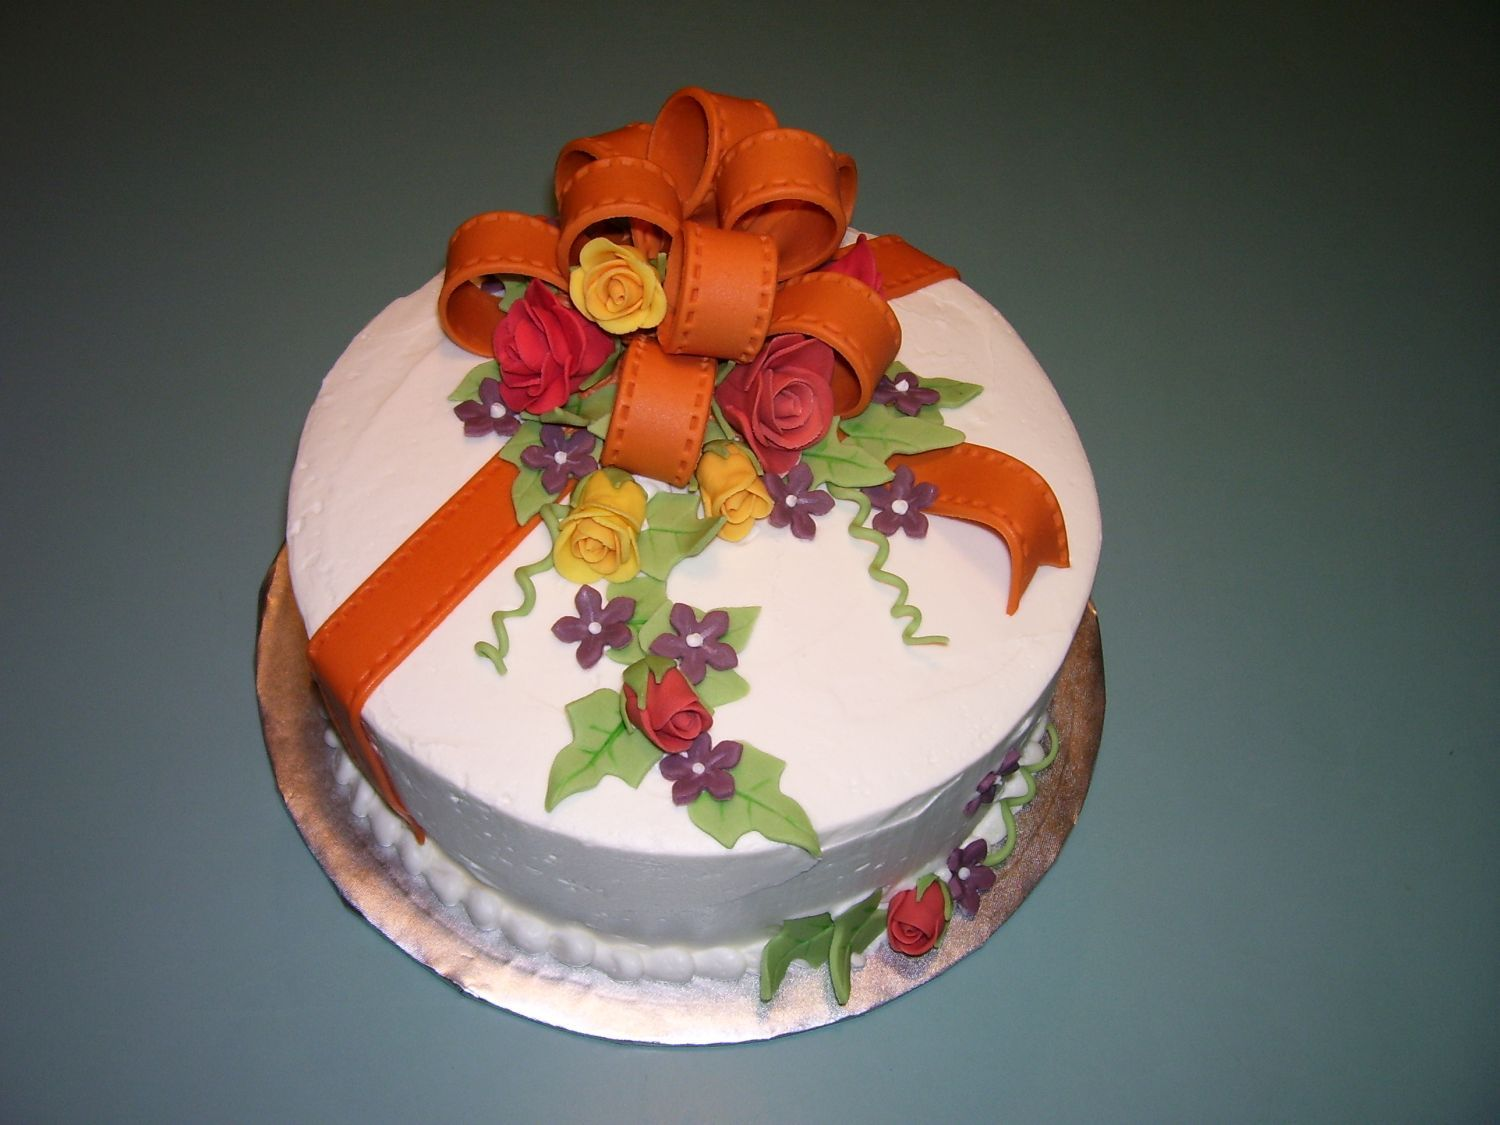 Fall Colors A birthday cake done with flowers in fall colors